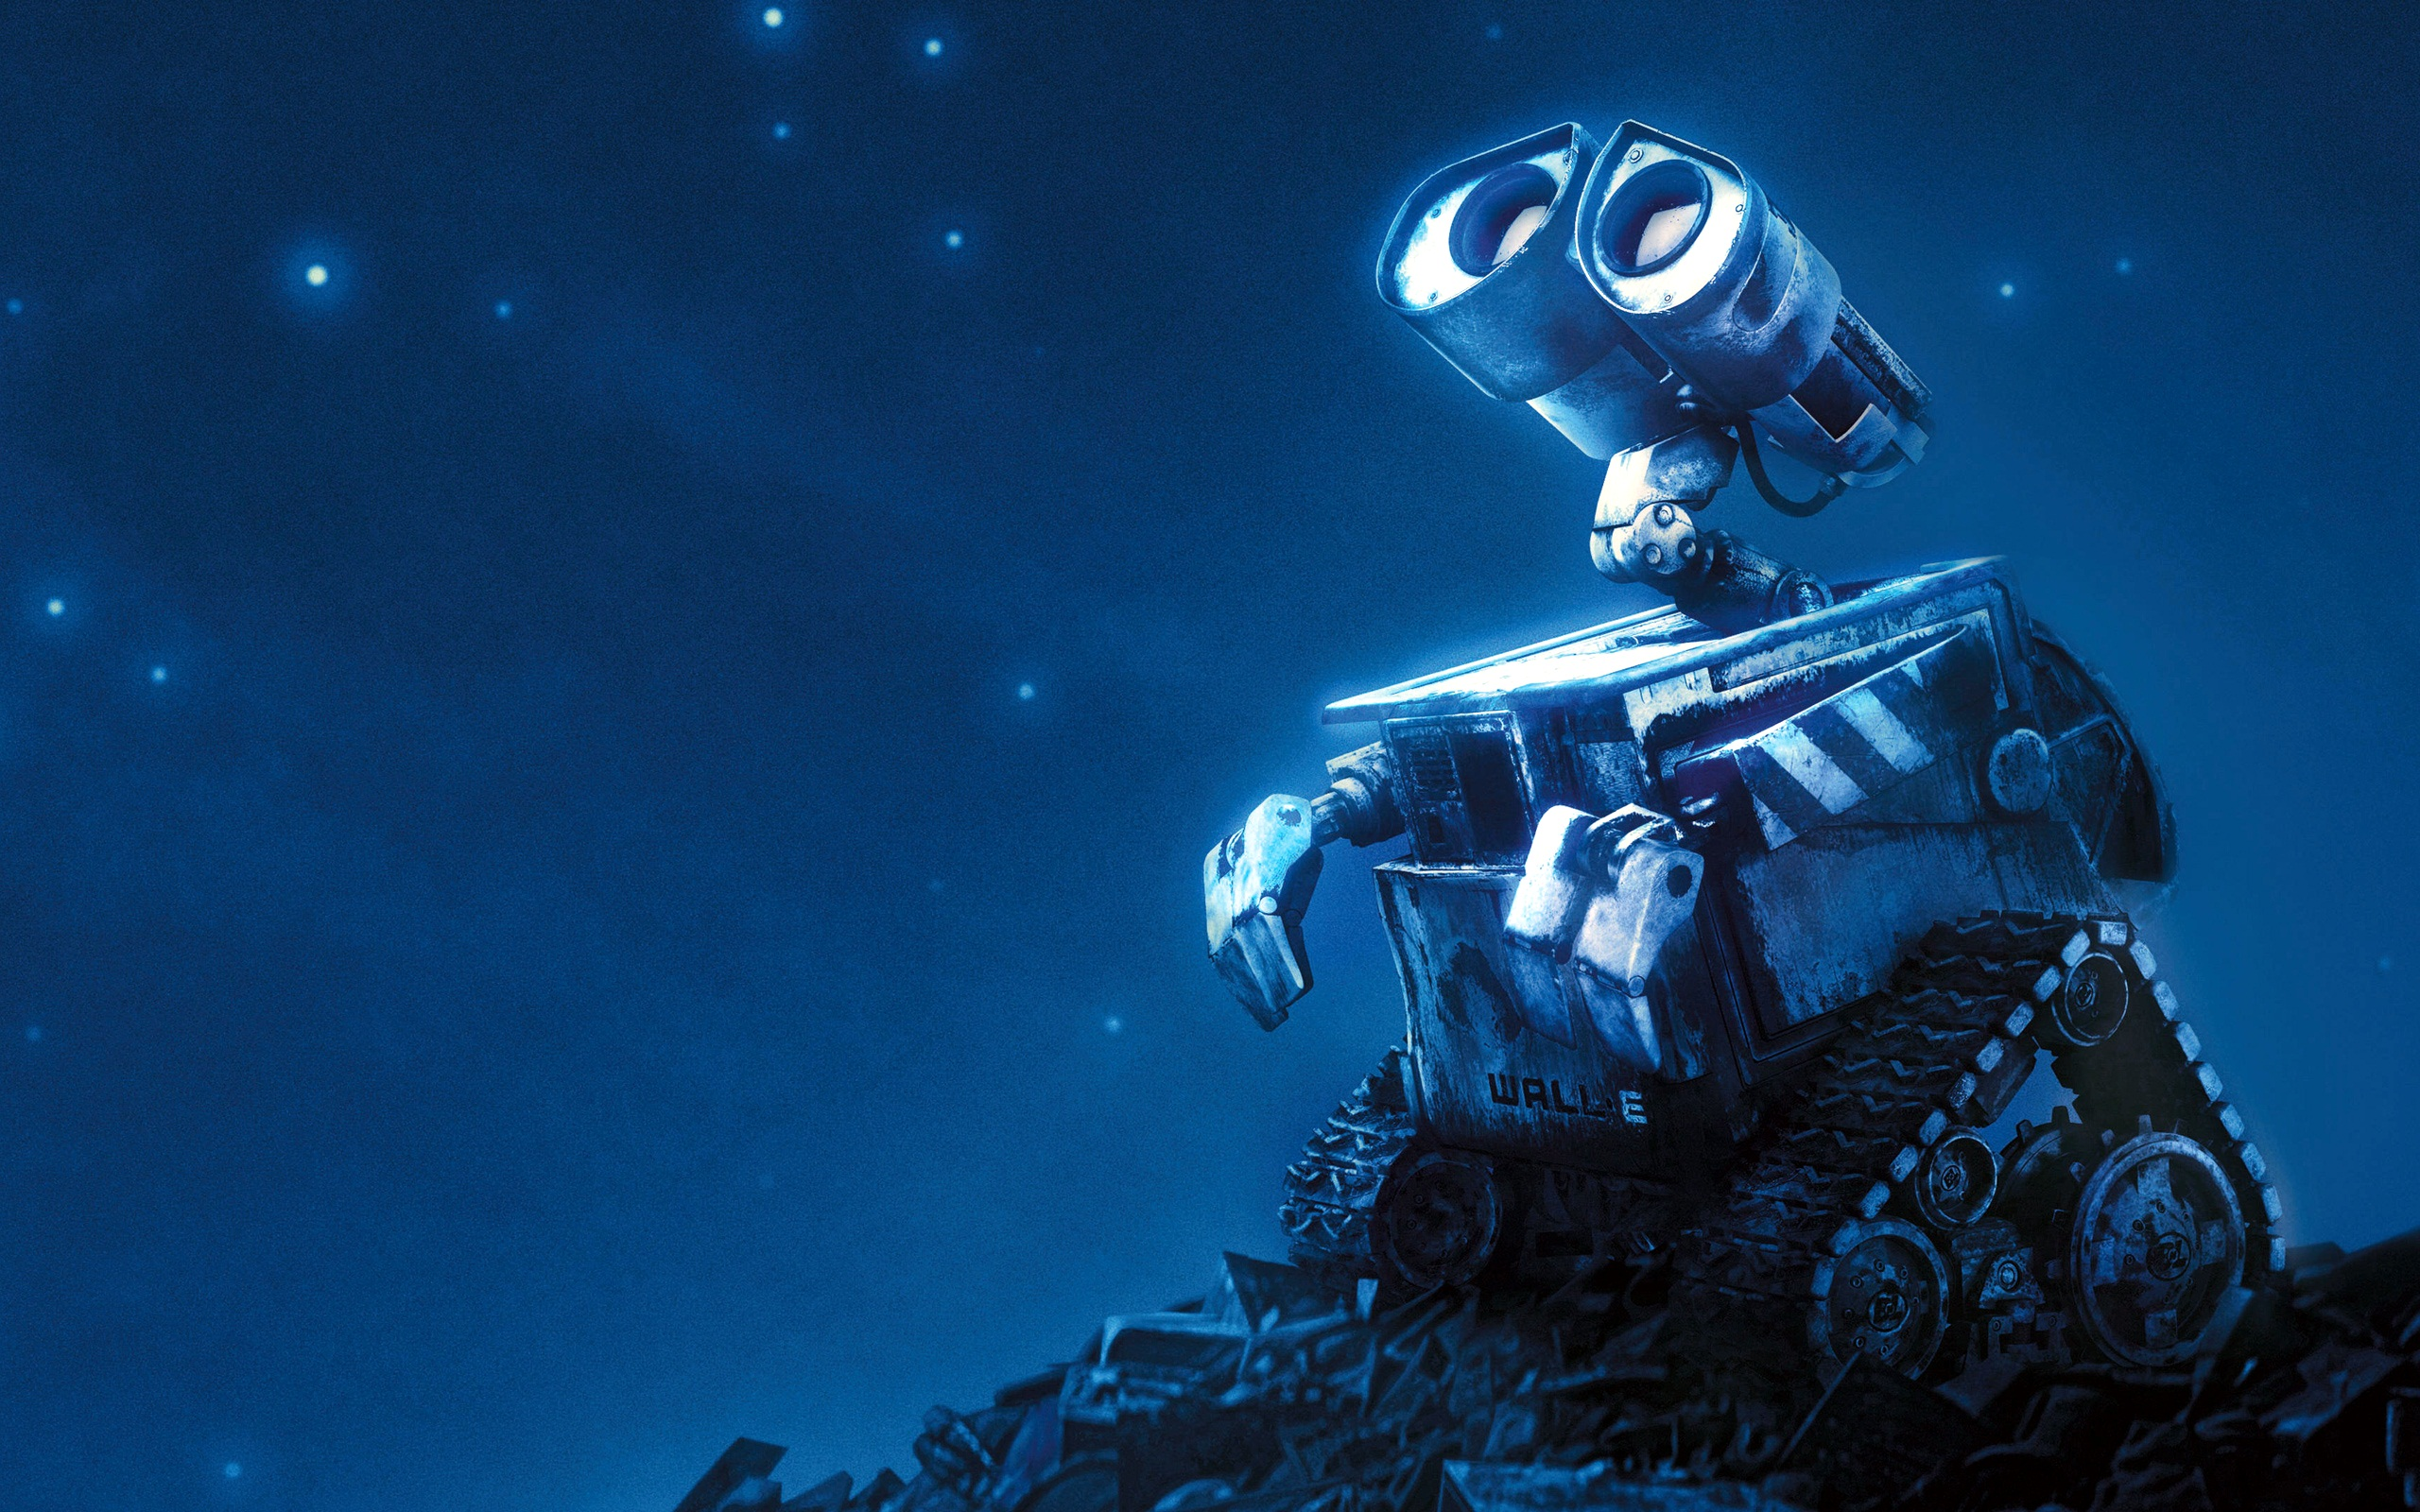 Wall-E wallpaper for desktop